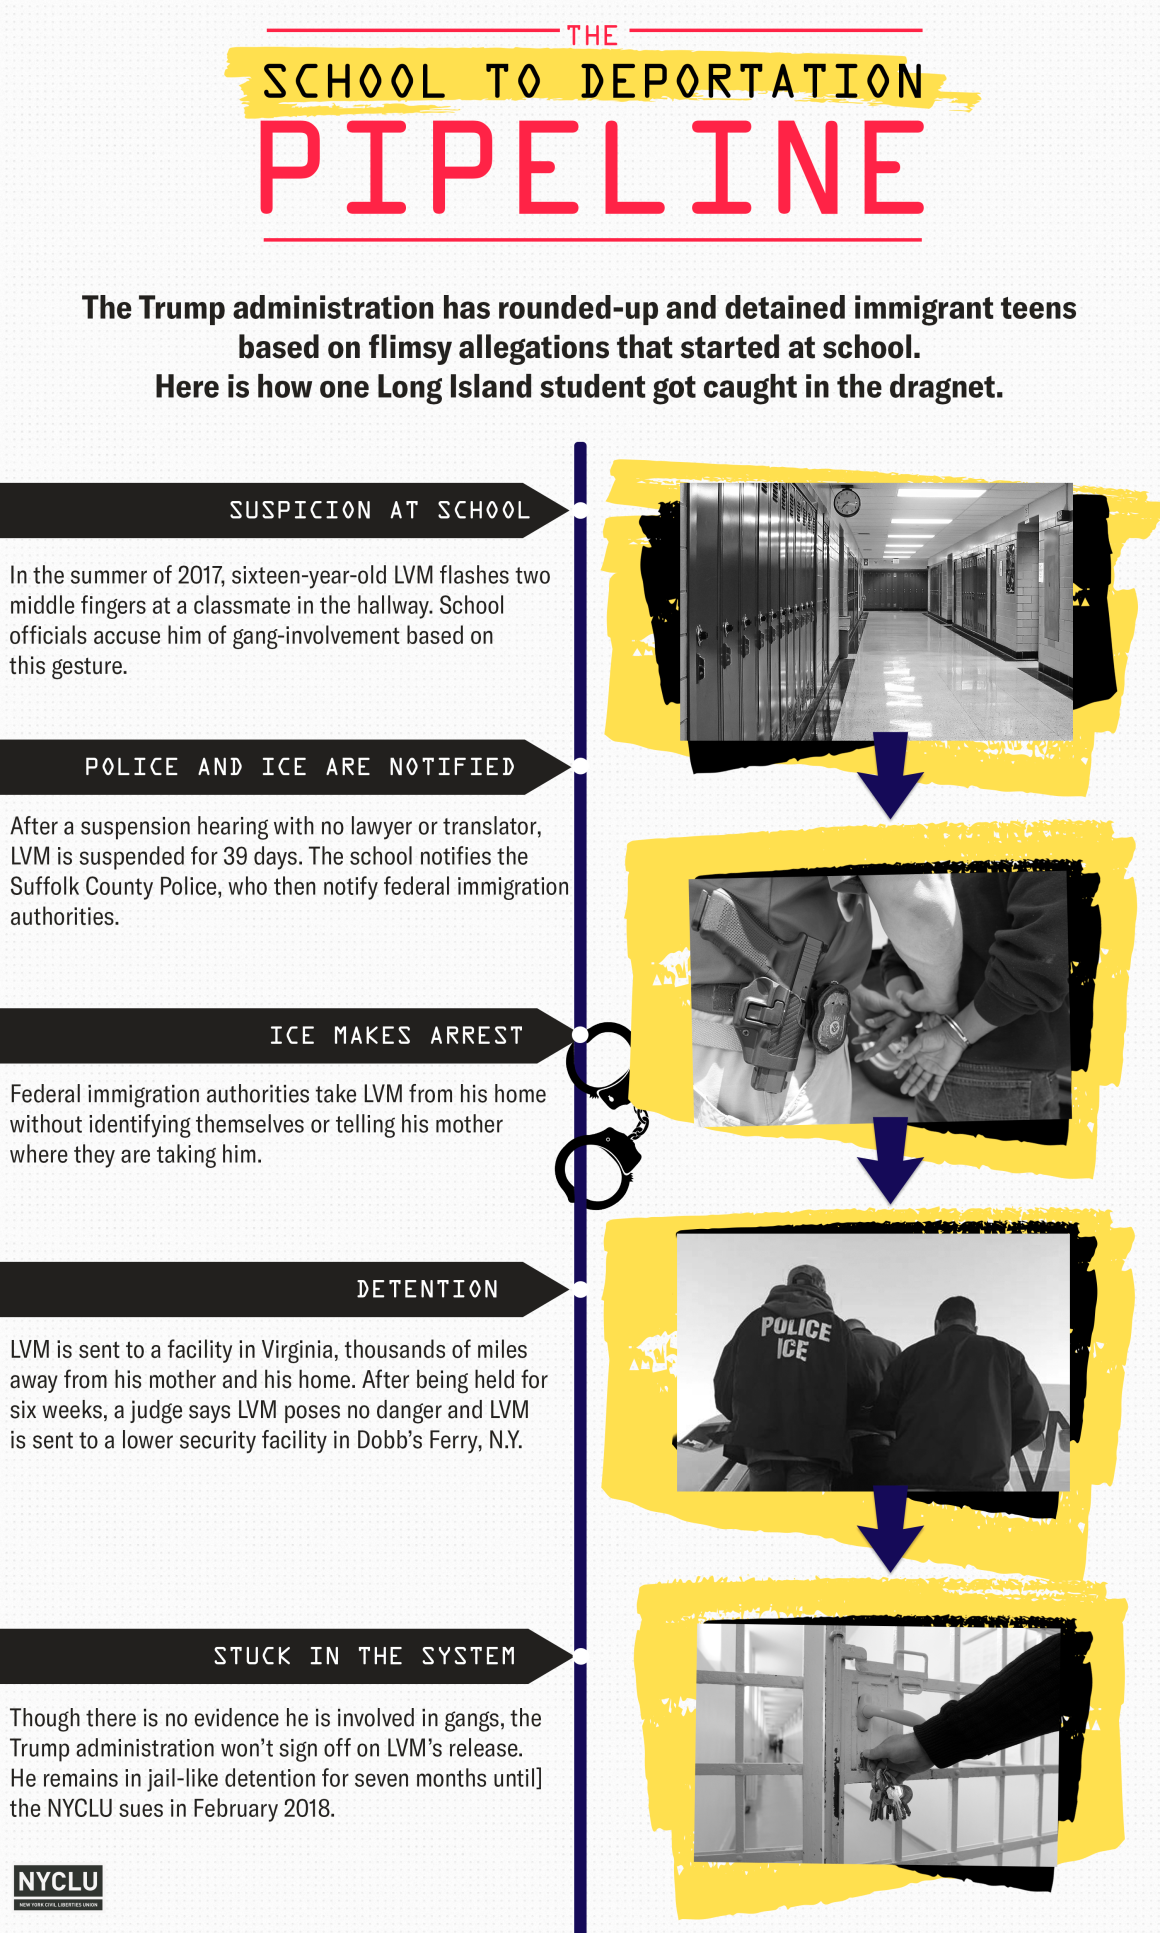 School to Deportation Pipeline infographic